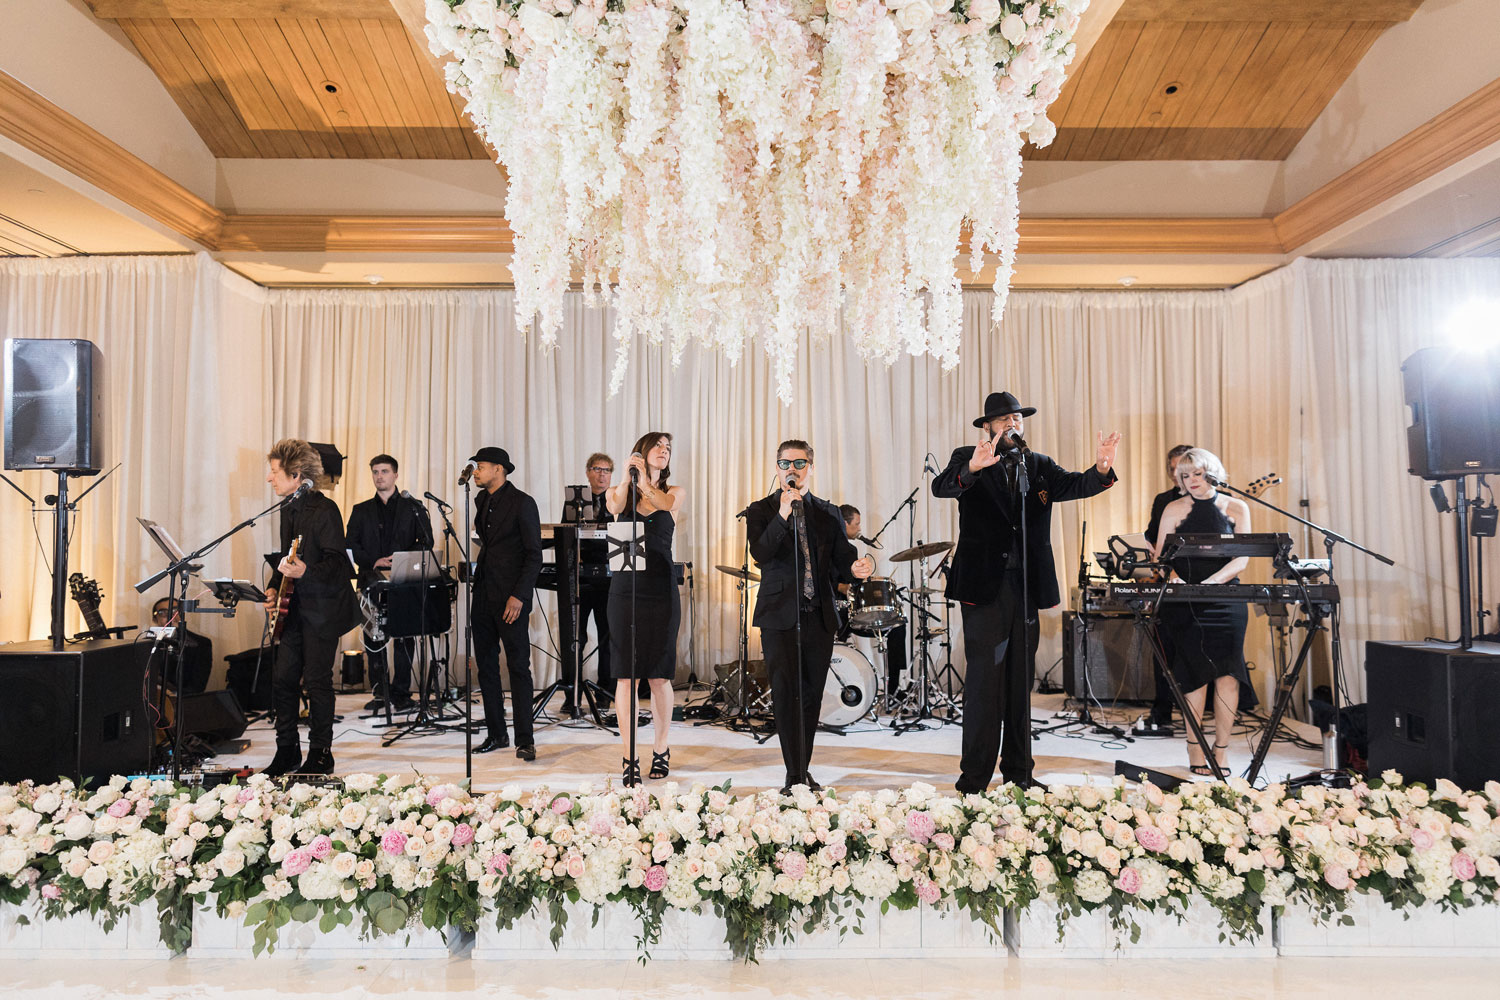 music mistakes that can ruin your wedding, mistakes to avoid with your wedding music